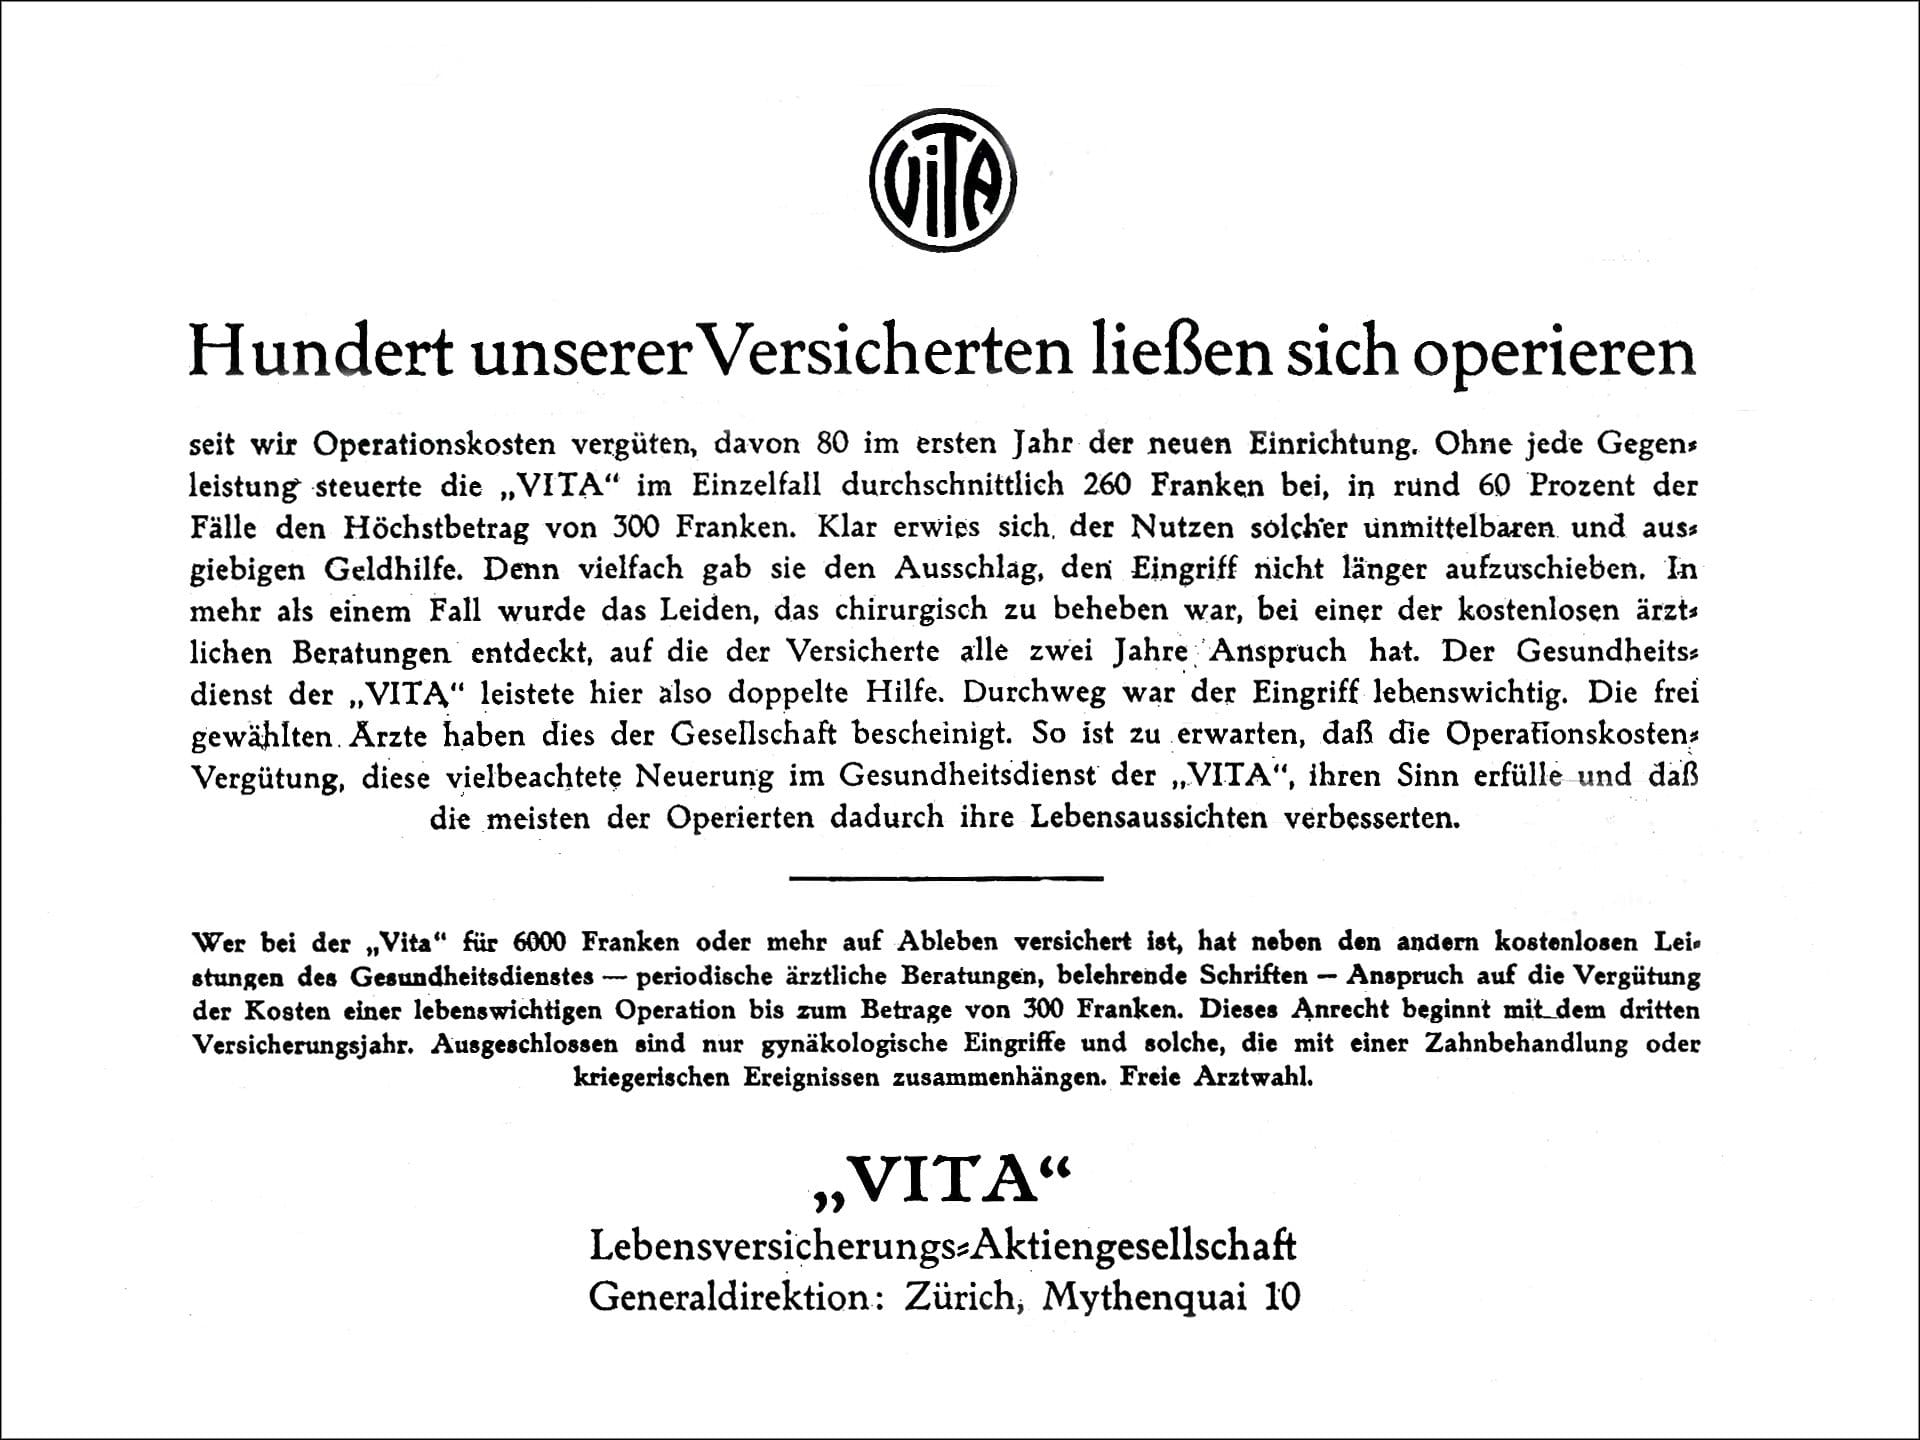 1940: Vita starts paying for operations